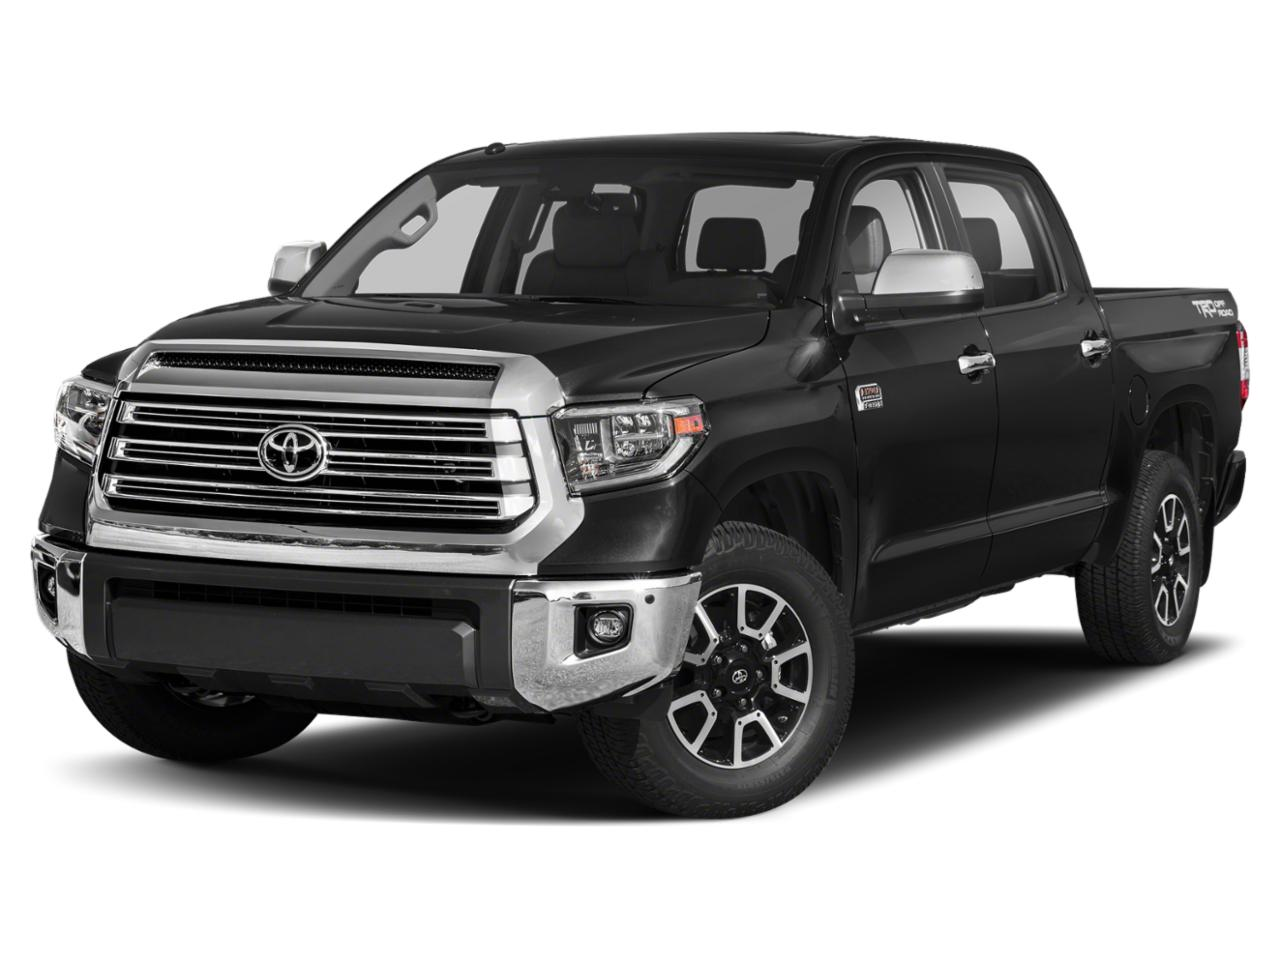 2018 Toyota Tundra 4WD Vehicle Photo in Greeley, CO 80634